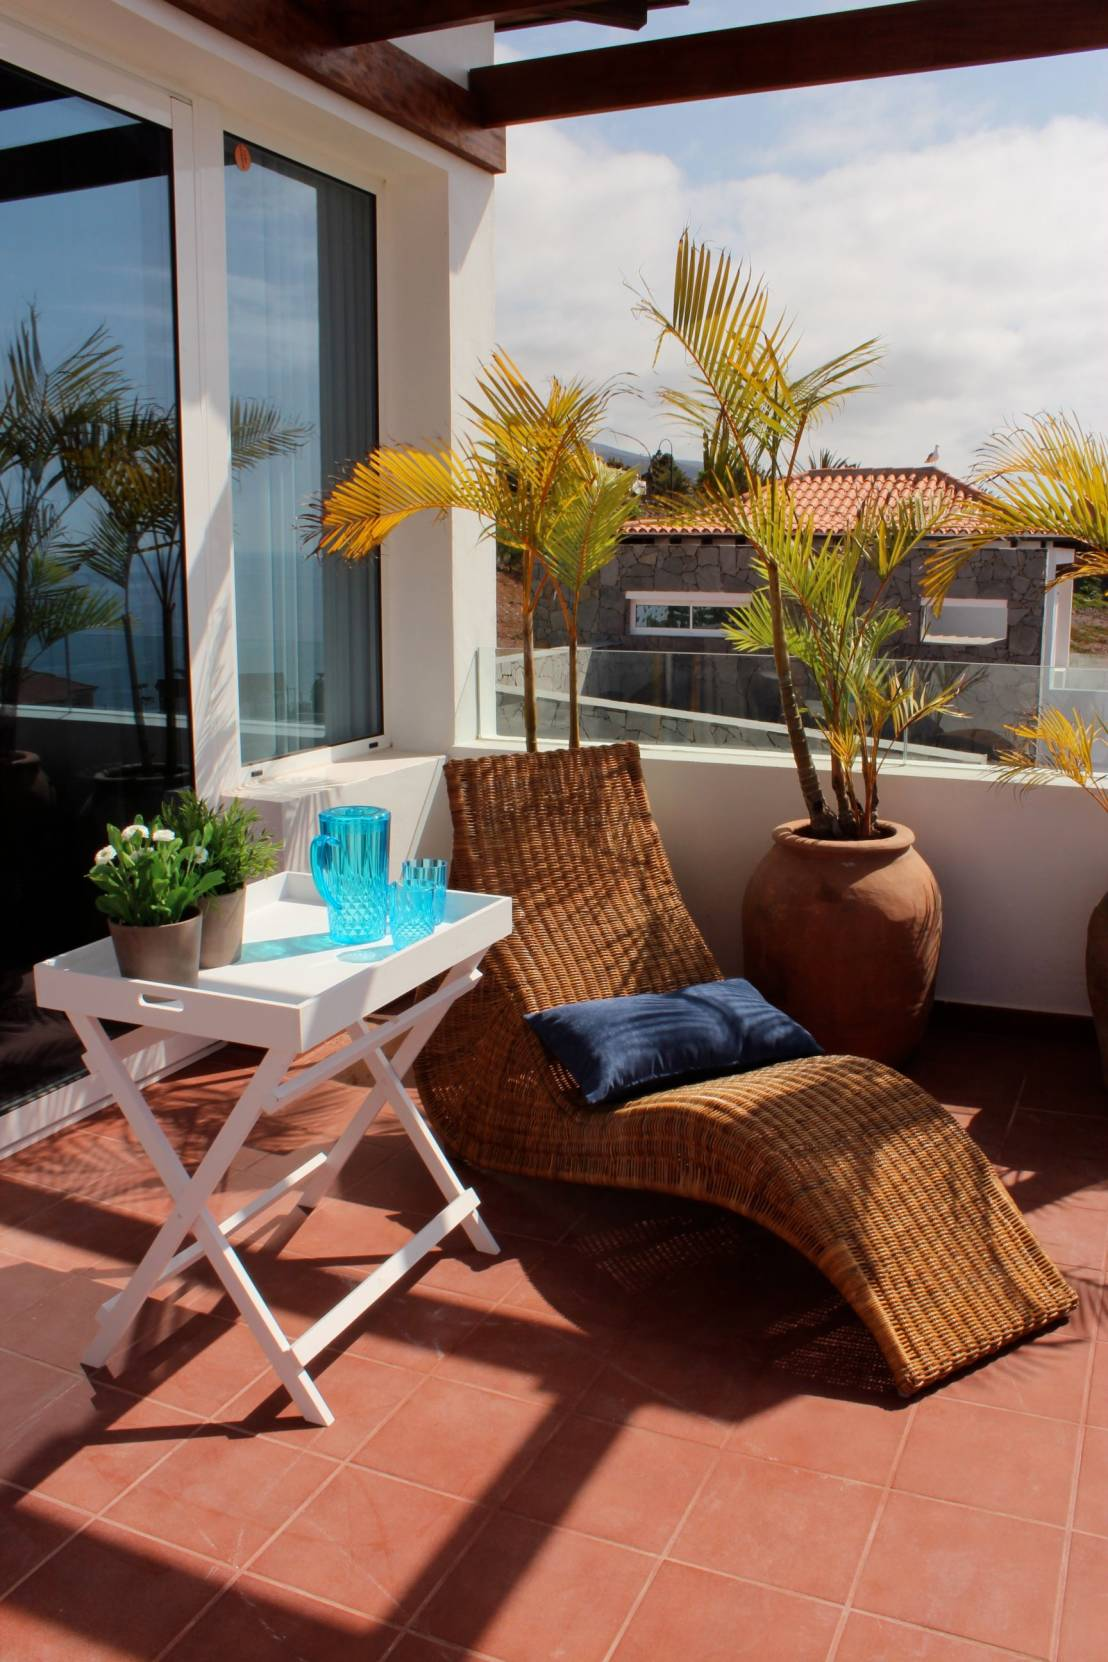 7 grandes ideas para balcones y terrazas peque as for Terraza para balcon